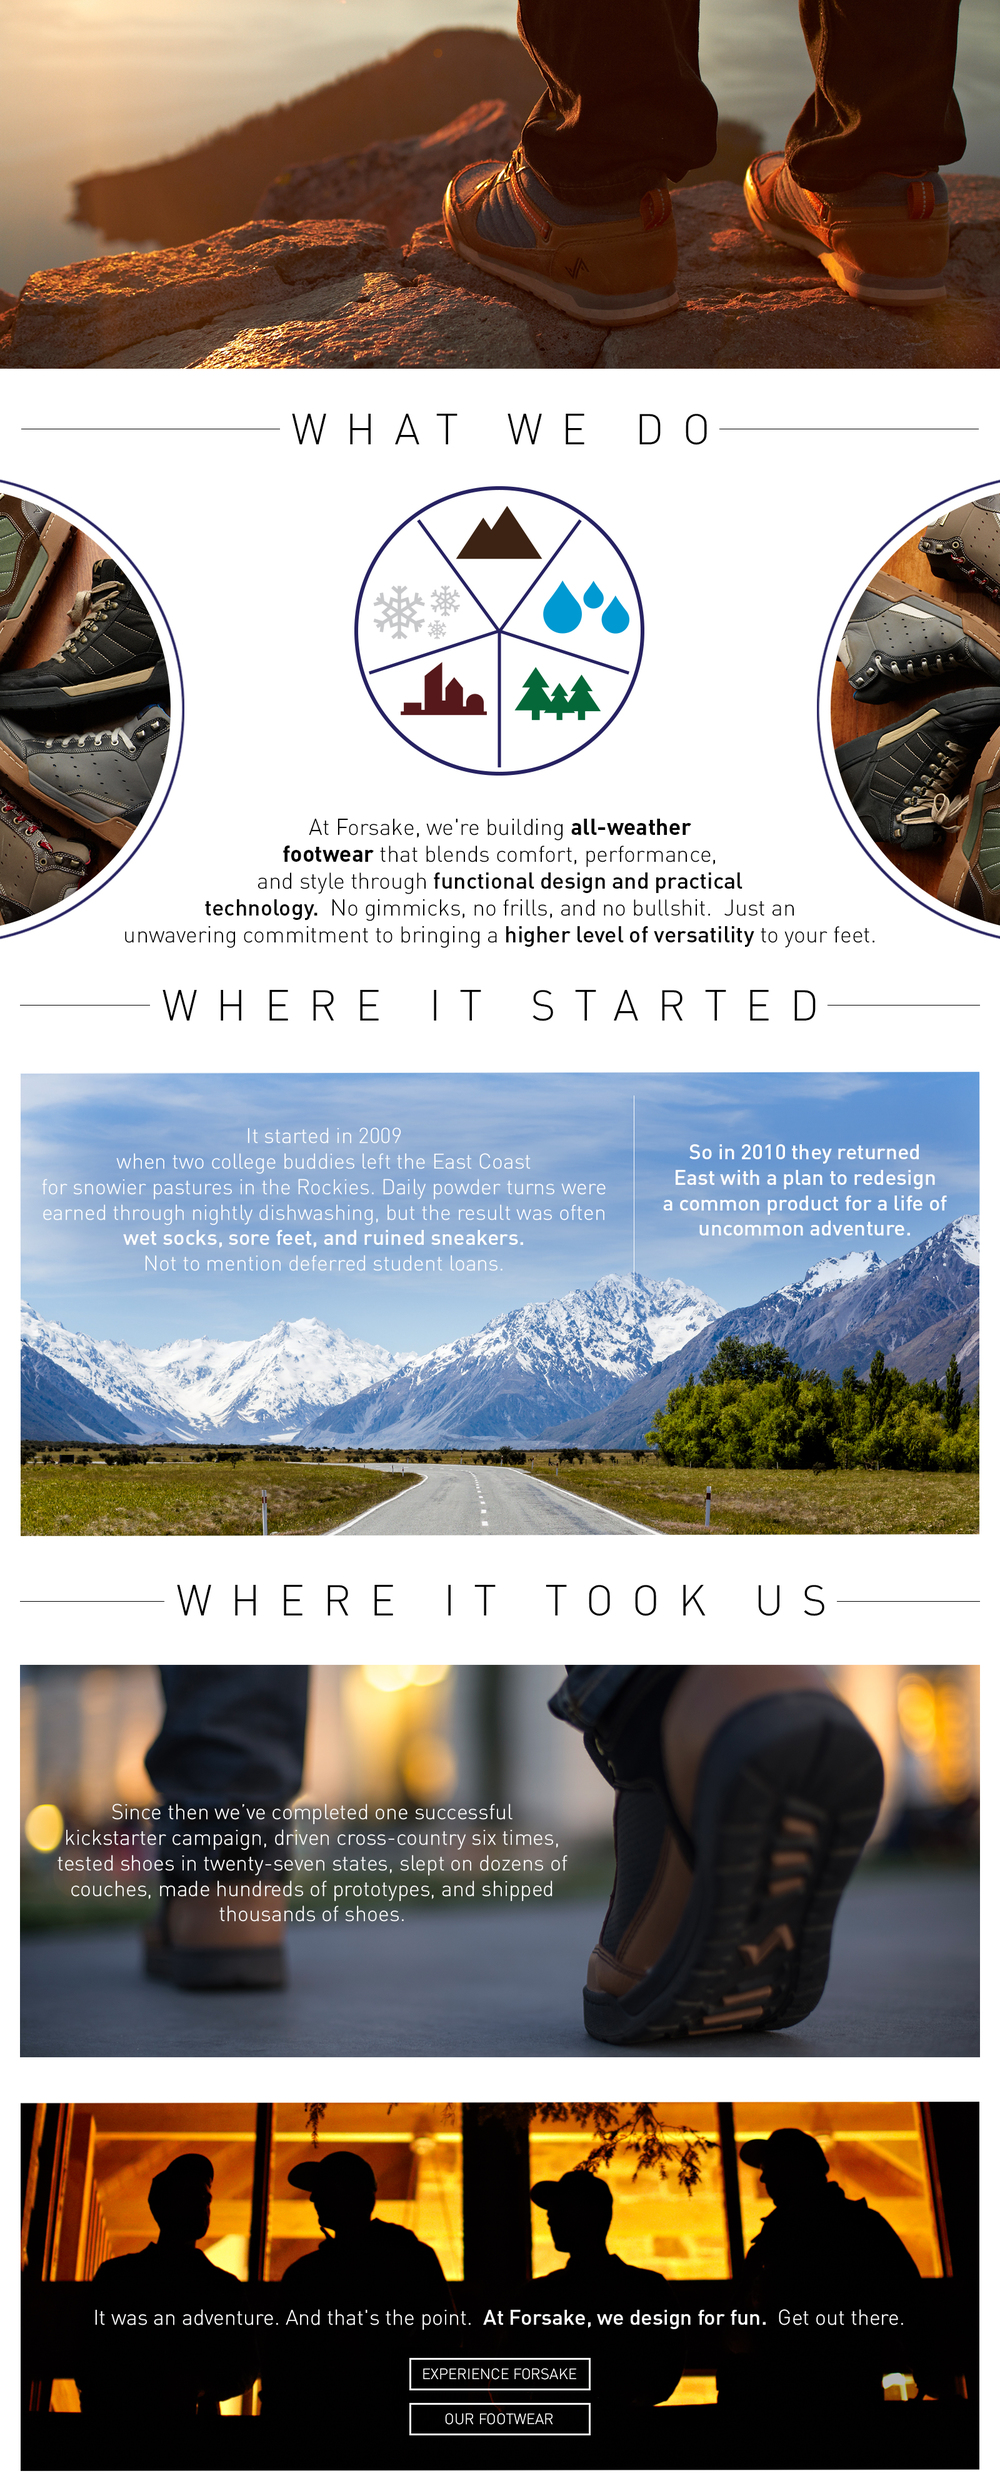 Forsake Co is a new start-up shoe company out of Boston, Massachusetts.  The story of how they came to be is a very important part of the culture of their brand.  They came to me to design an experience section of their website that would tell the tale in a beautiful and informative way.  www.forsake.com/story/